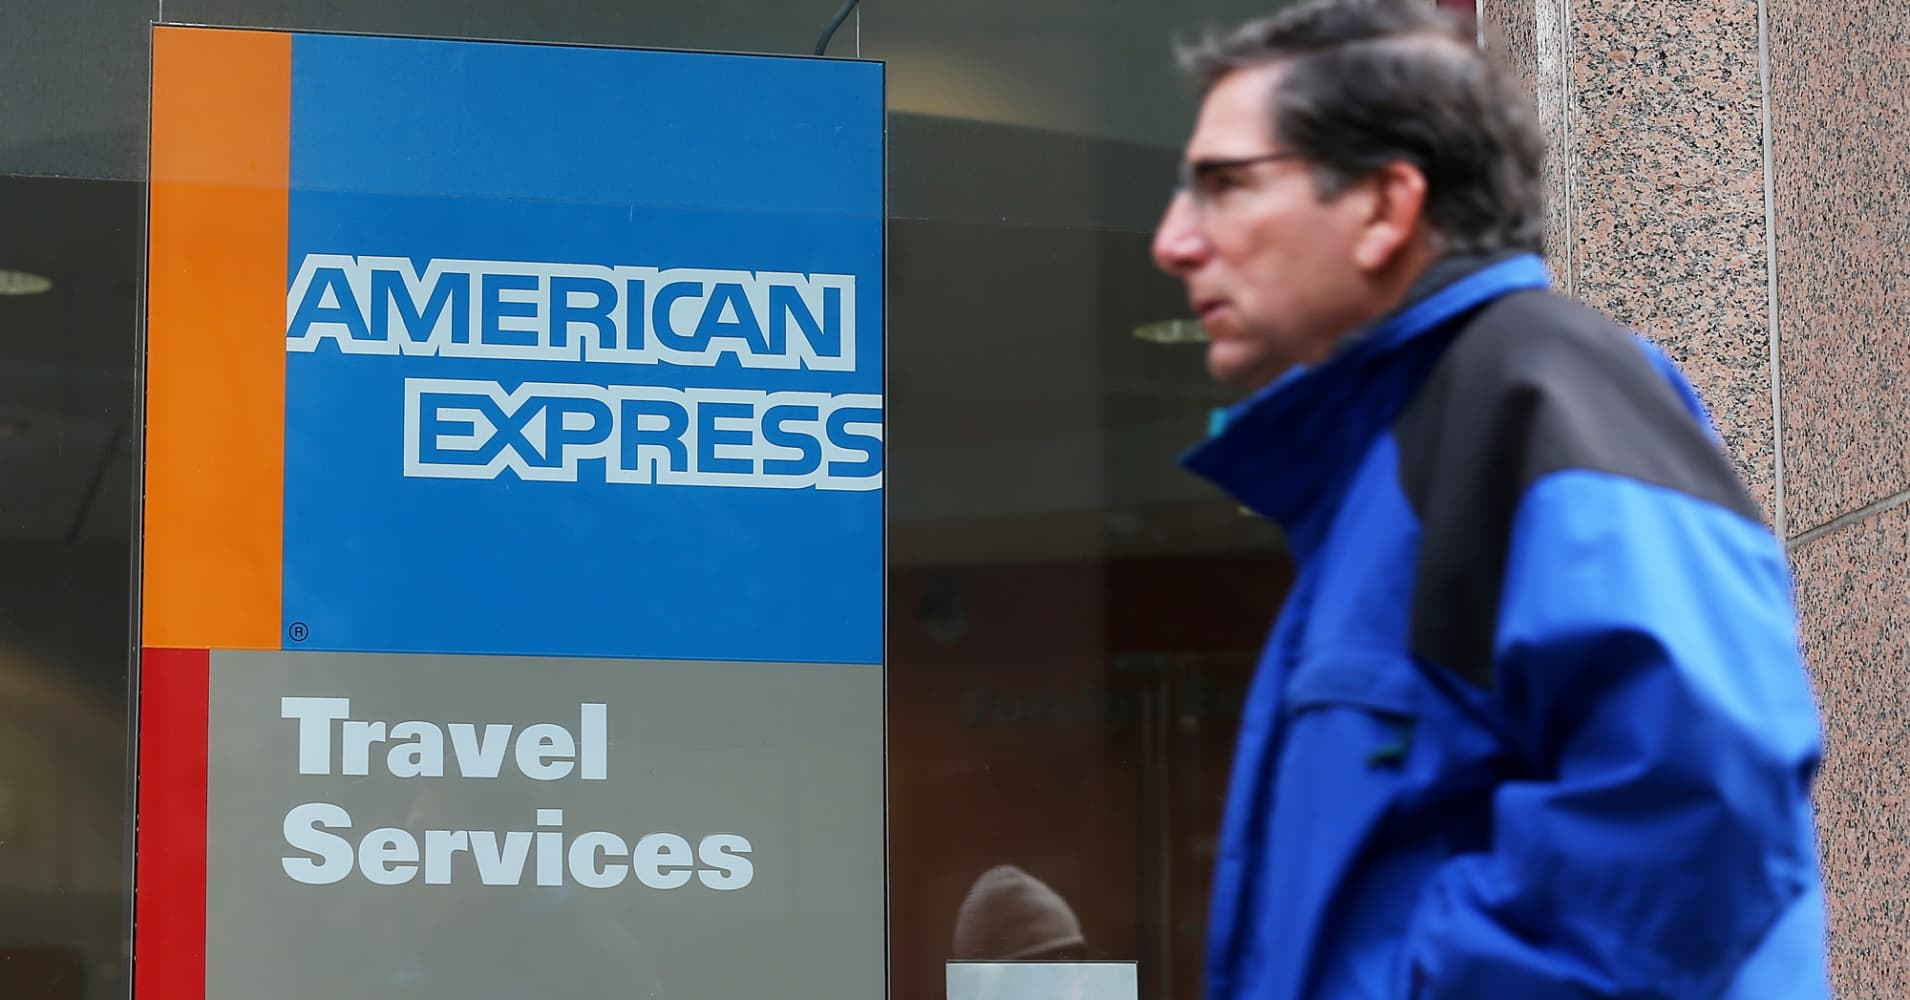 American Express drops after missing Wall Street's fourth-quarter expectations